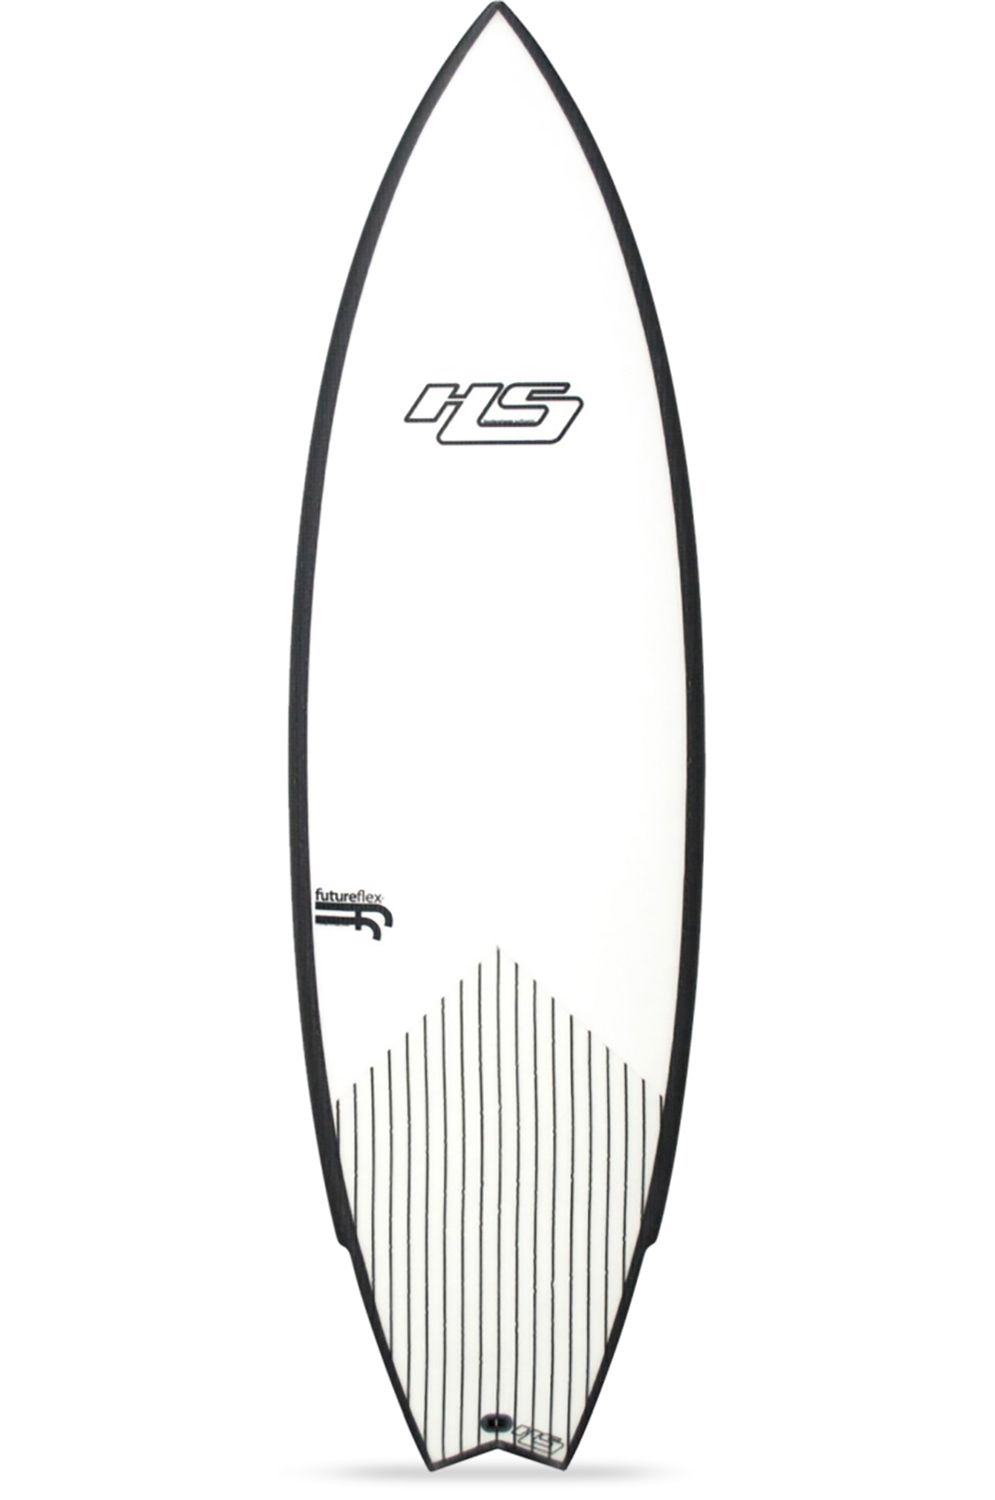 Prancha Surf Hayden Shapes UNTITLED FF CLEAR 6'1 Swallow Tail - White Futures 6ft1